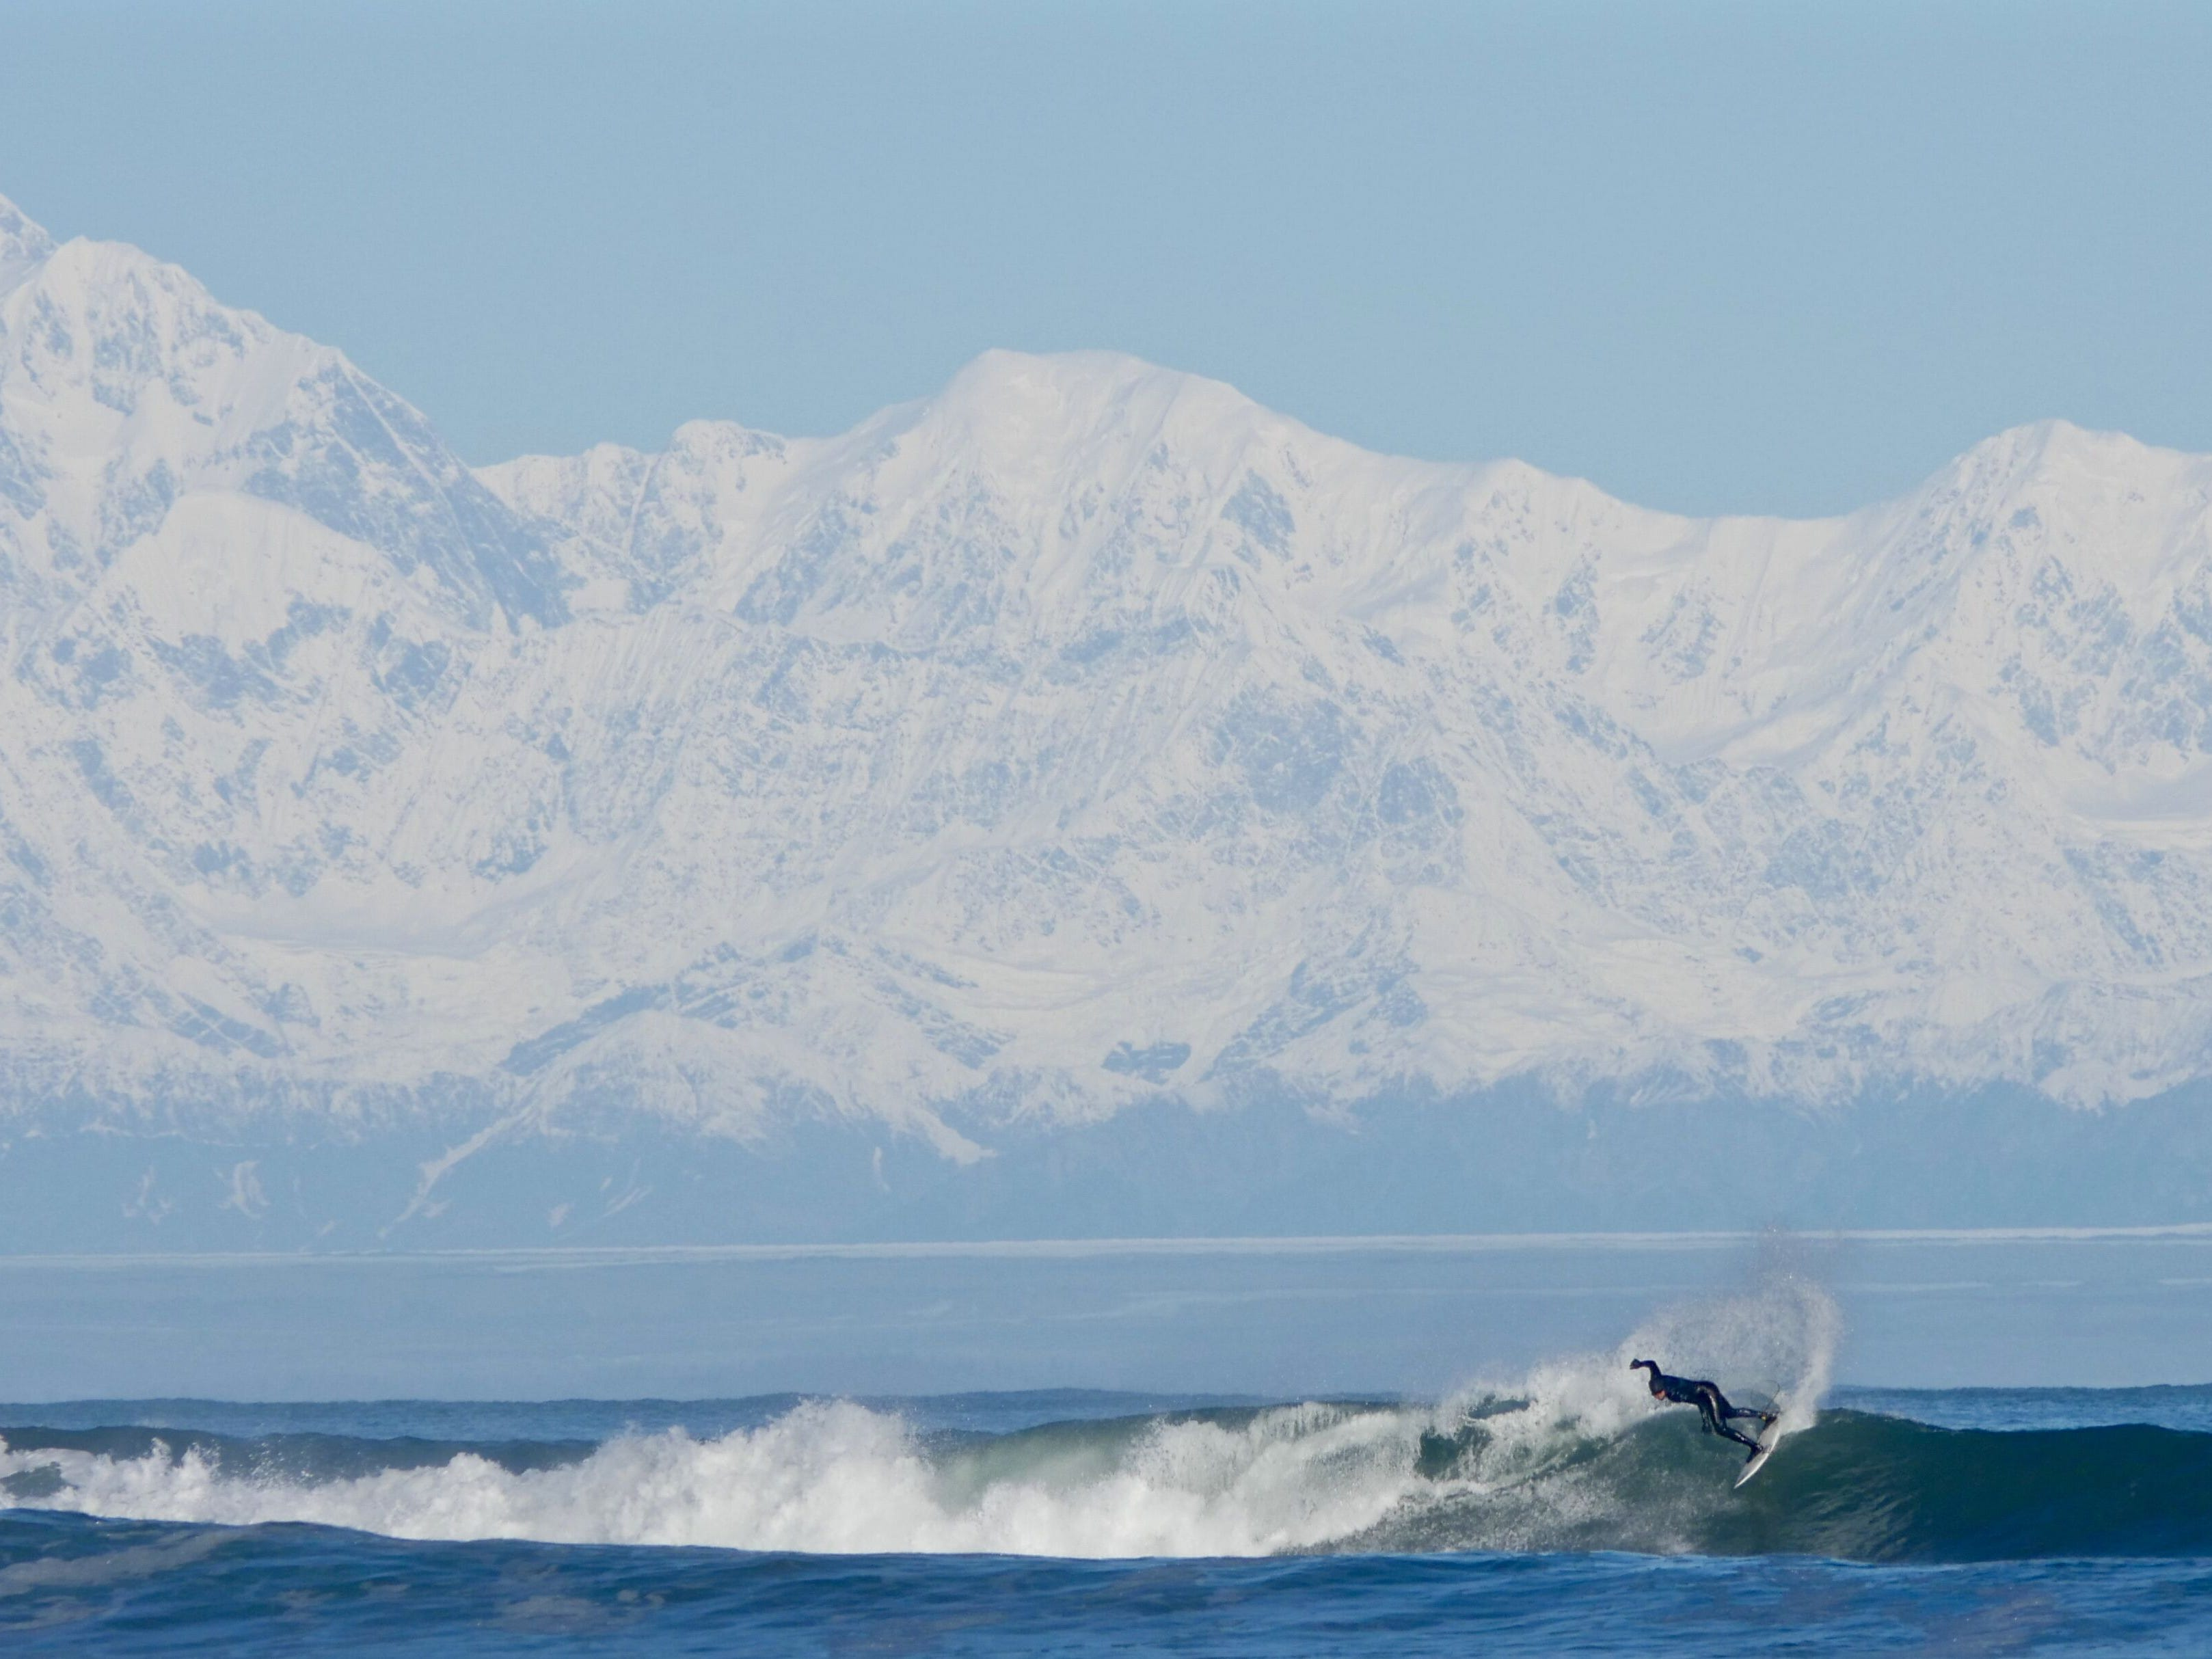 At the remote bay of Yakutat, Alaska, surfers can ride waves in the shadow of an 18,000-foot snow-capped mountain.